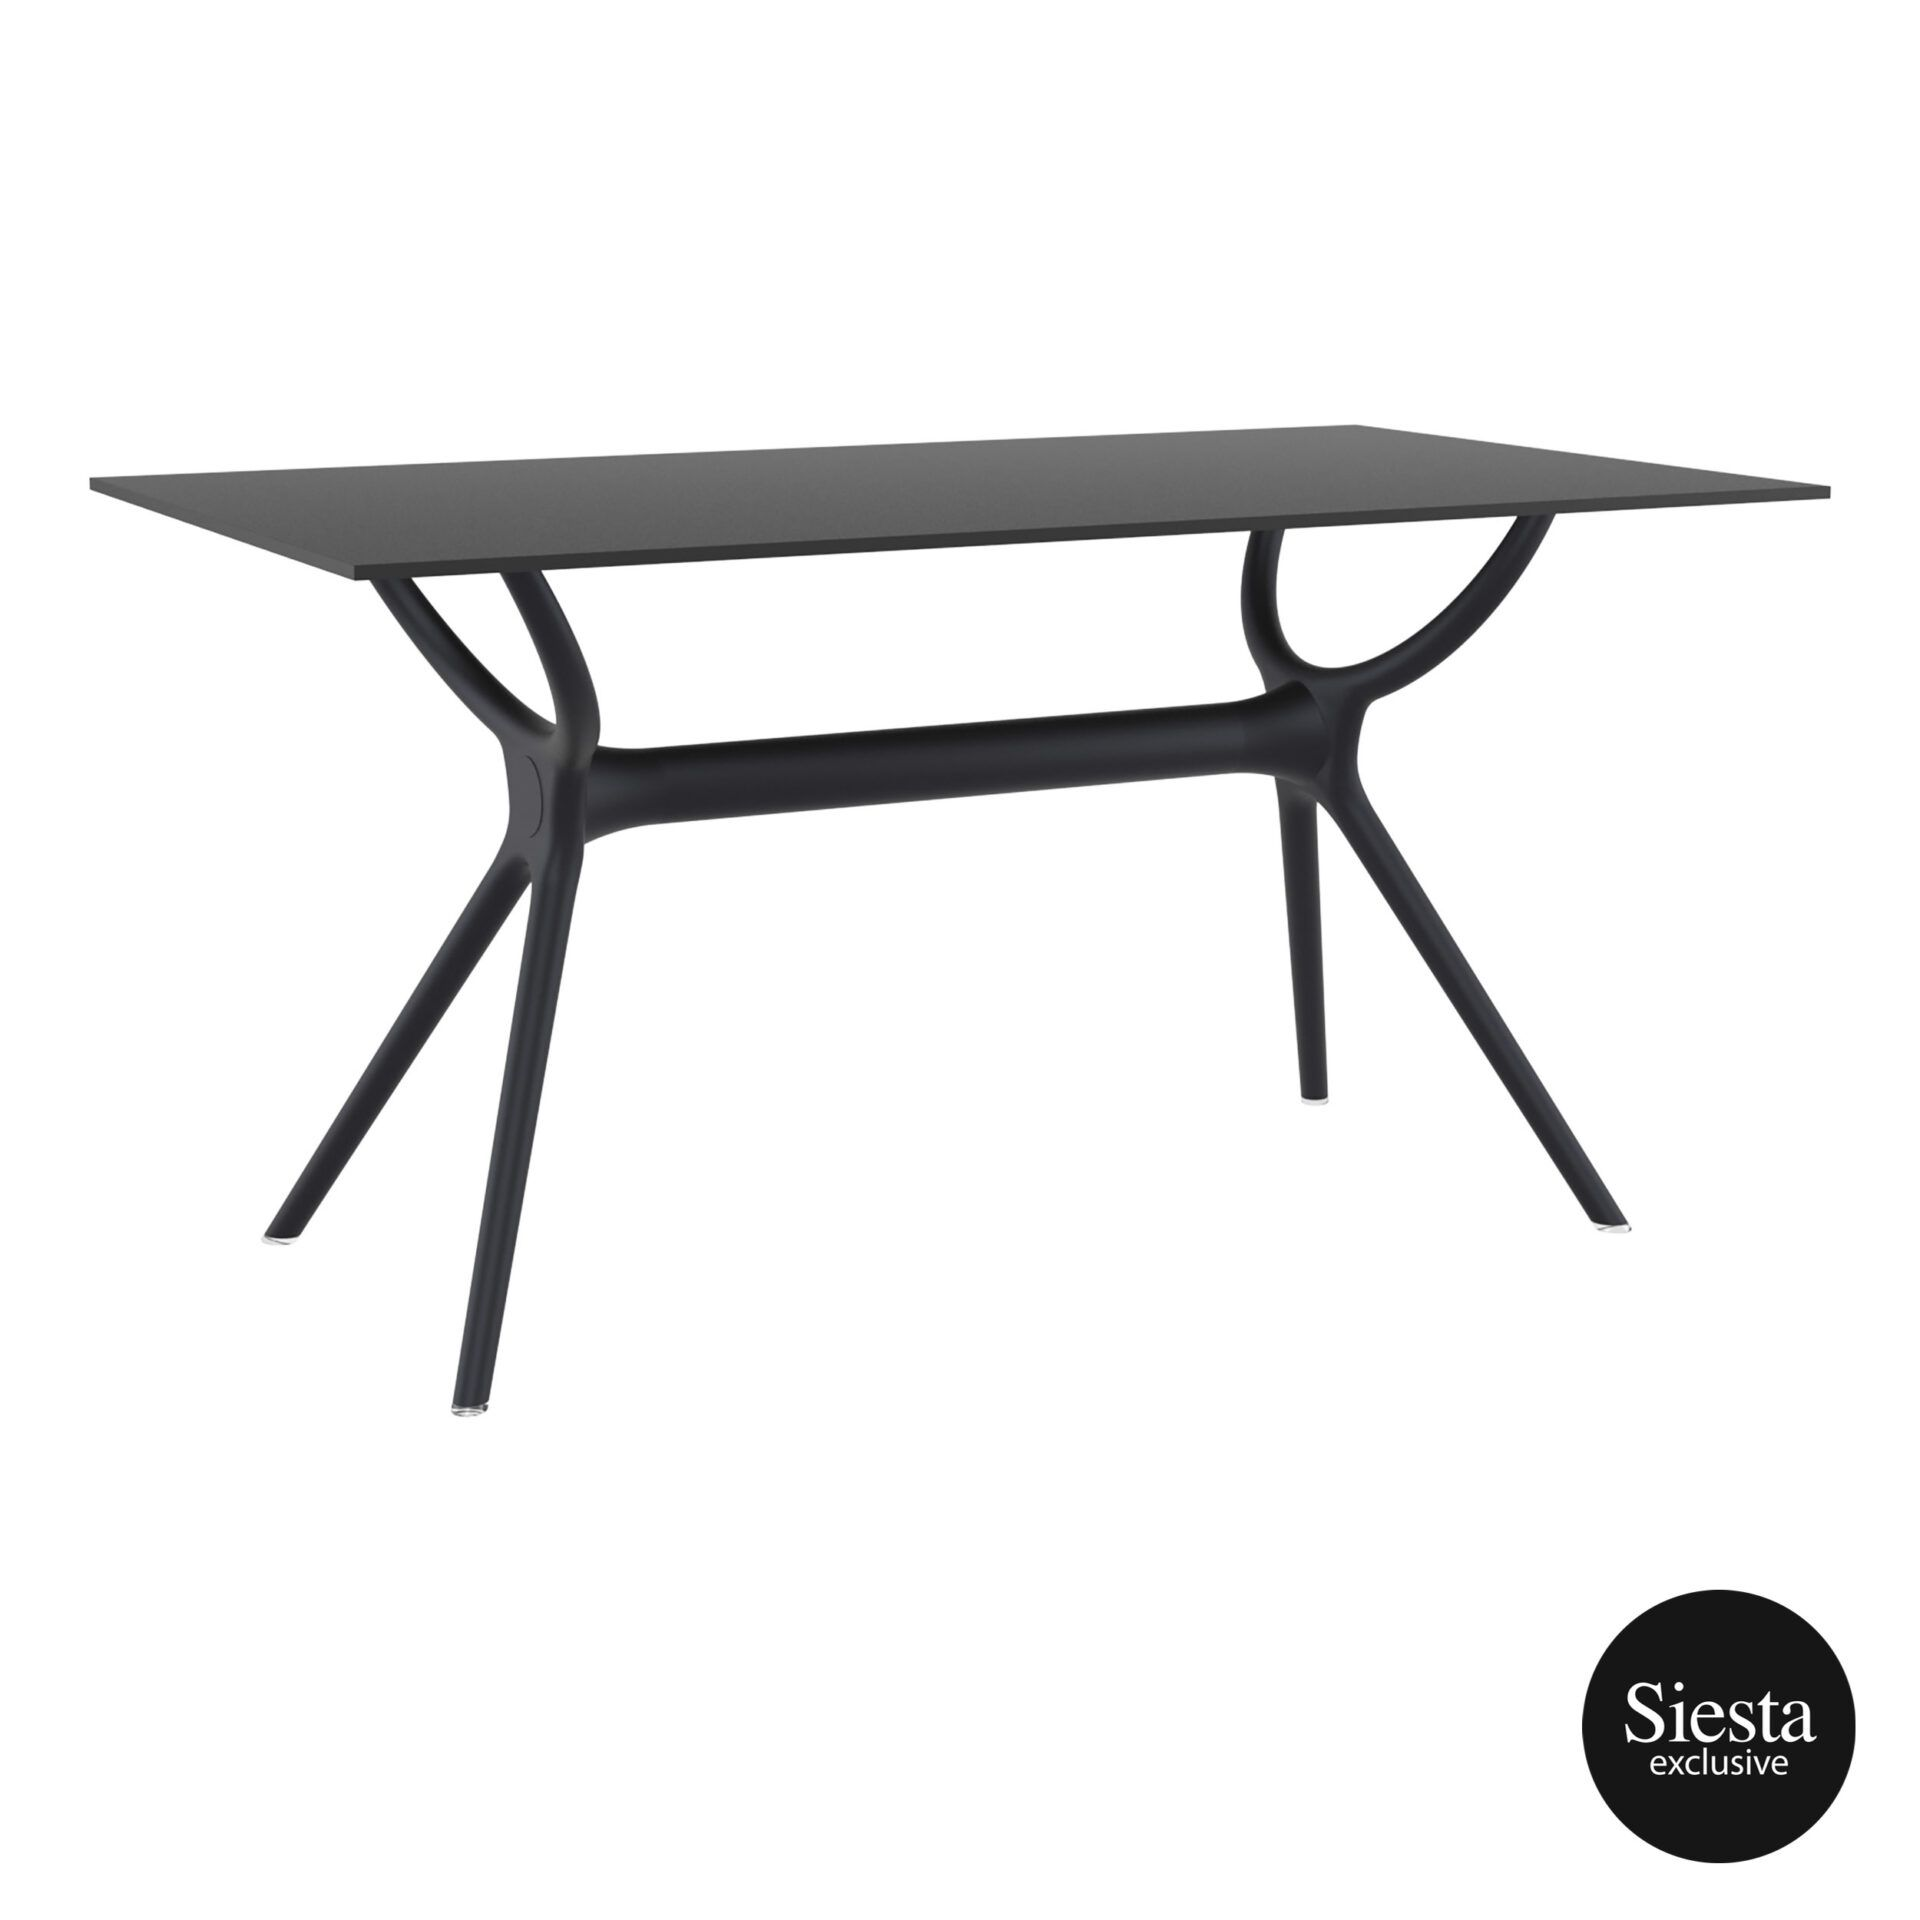 polypropylene dining air table 140 black front side 1